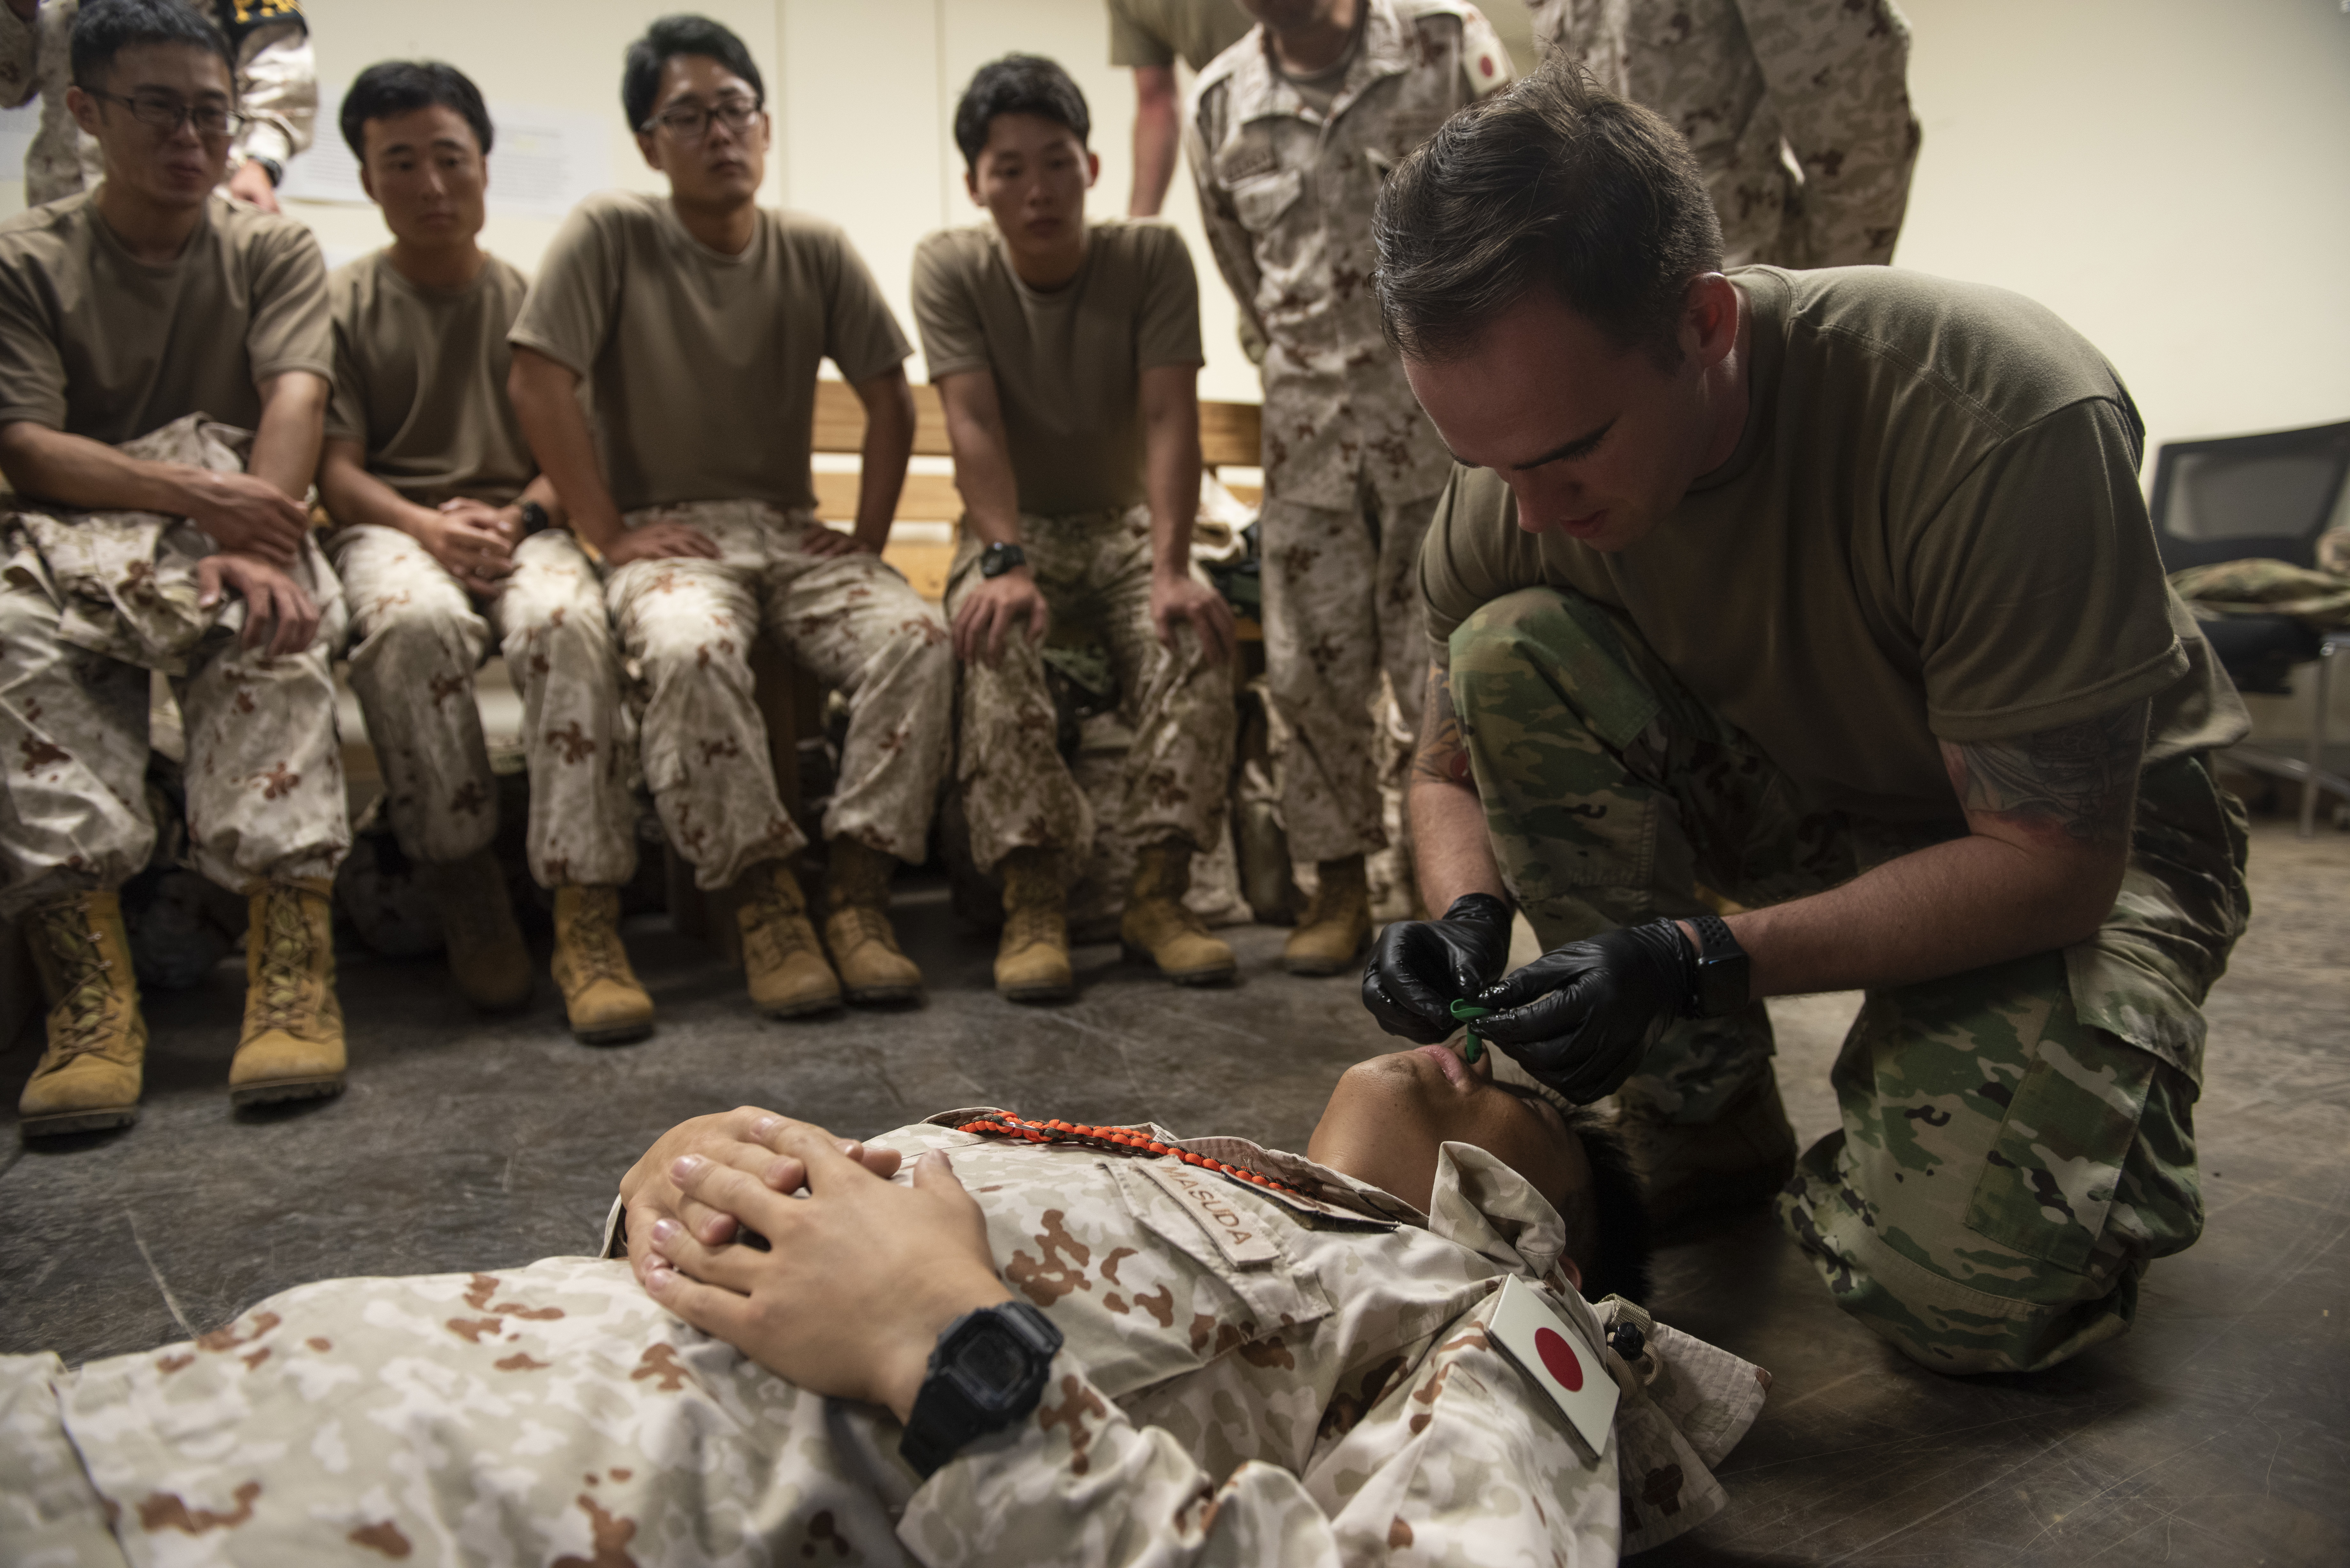 U.S. Army Sgt. Barrey Paddock, senior medic for Delta Company, 403rd Civil Affairs Battalion, assigned to Combined Joint Task Force-Horn of Africa,